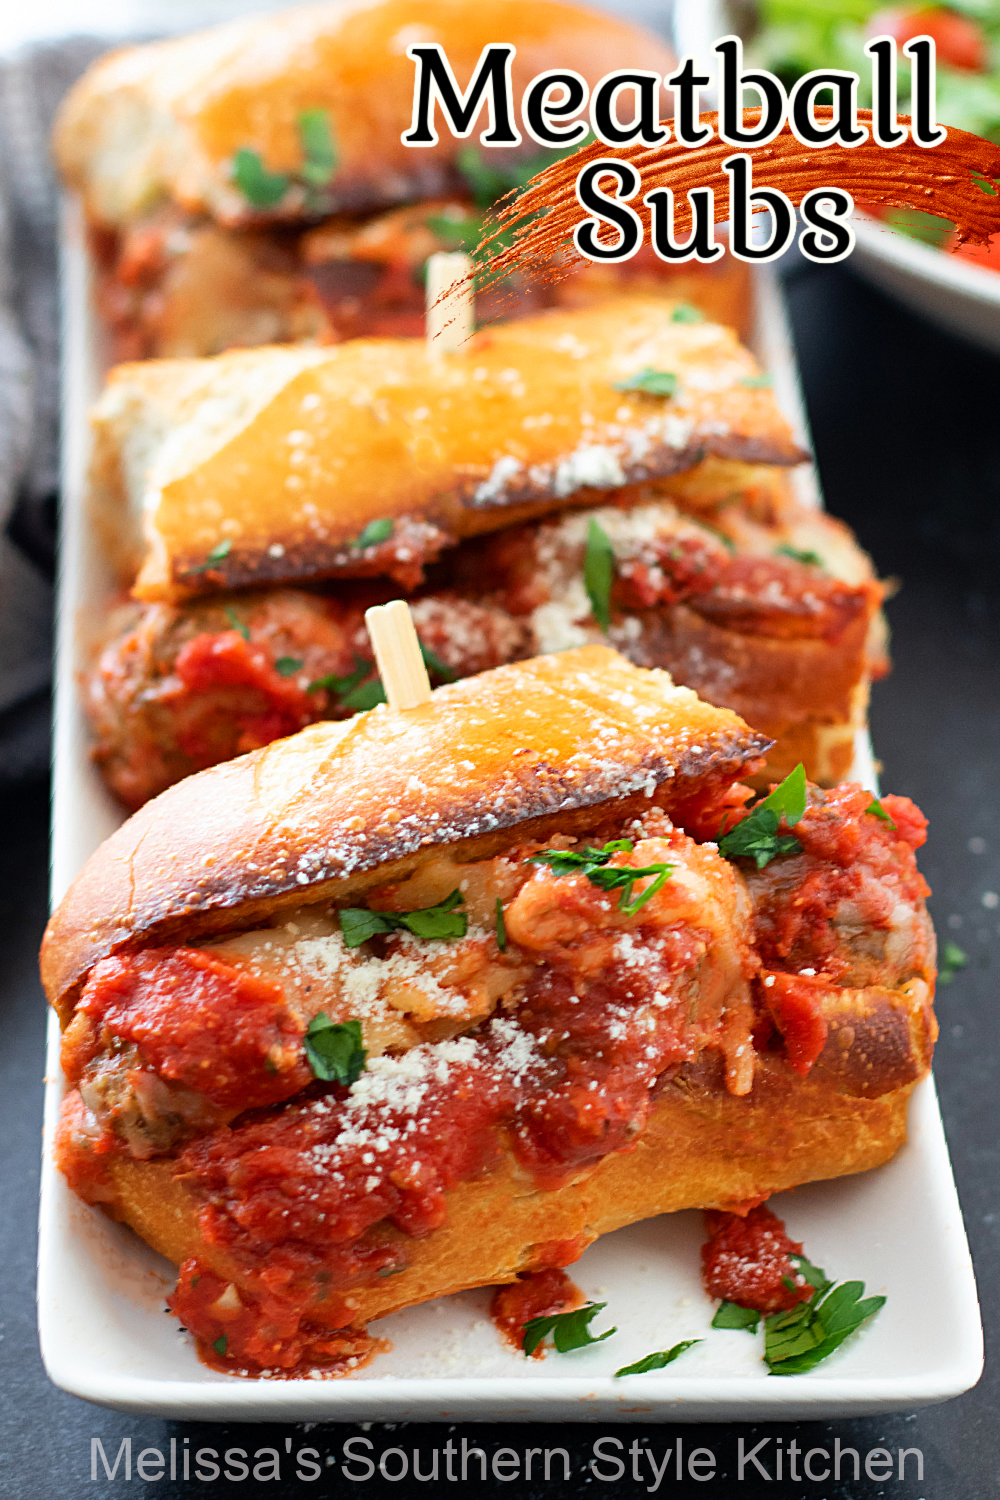 These Meatball Subs are ideal for casual meals and game day snacking #meatballsubs #meatballs #Italiansubs #easygroundbeefrecipes #dinner #snackrecipes #subs #frenchbread #southernrecipes